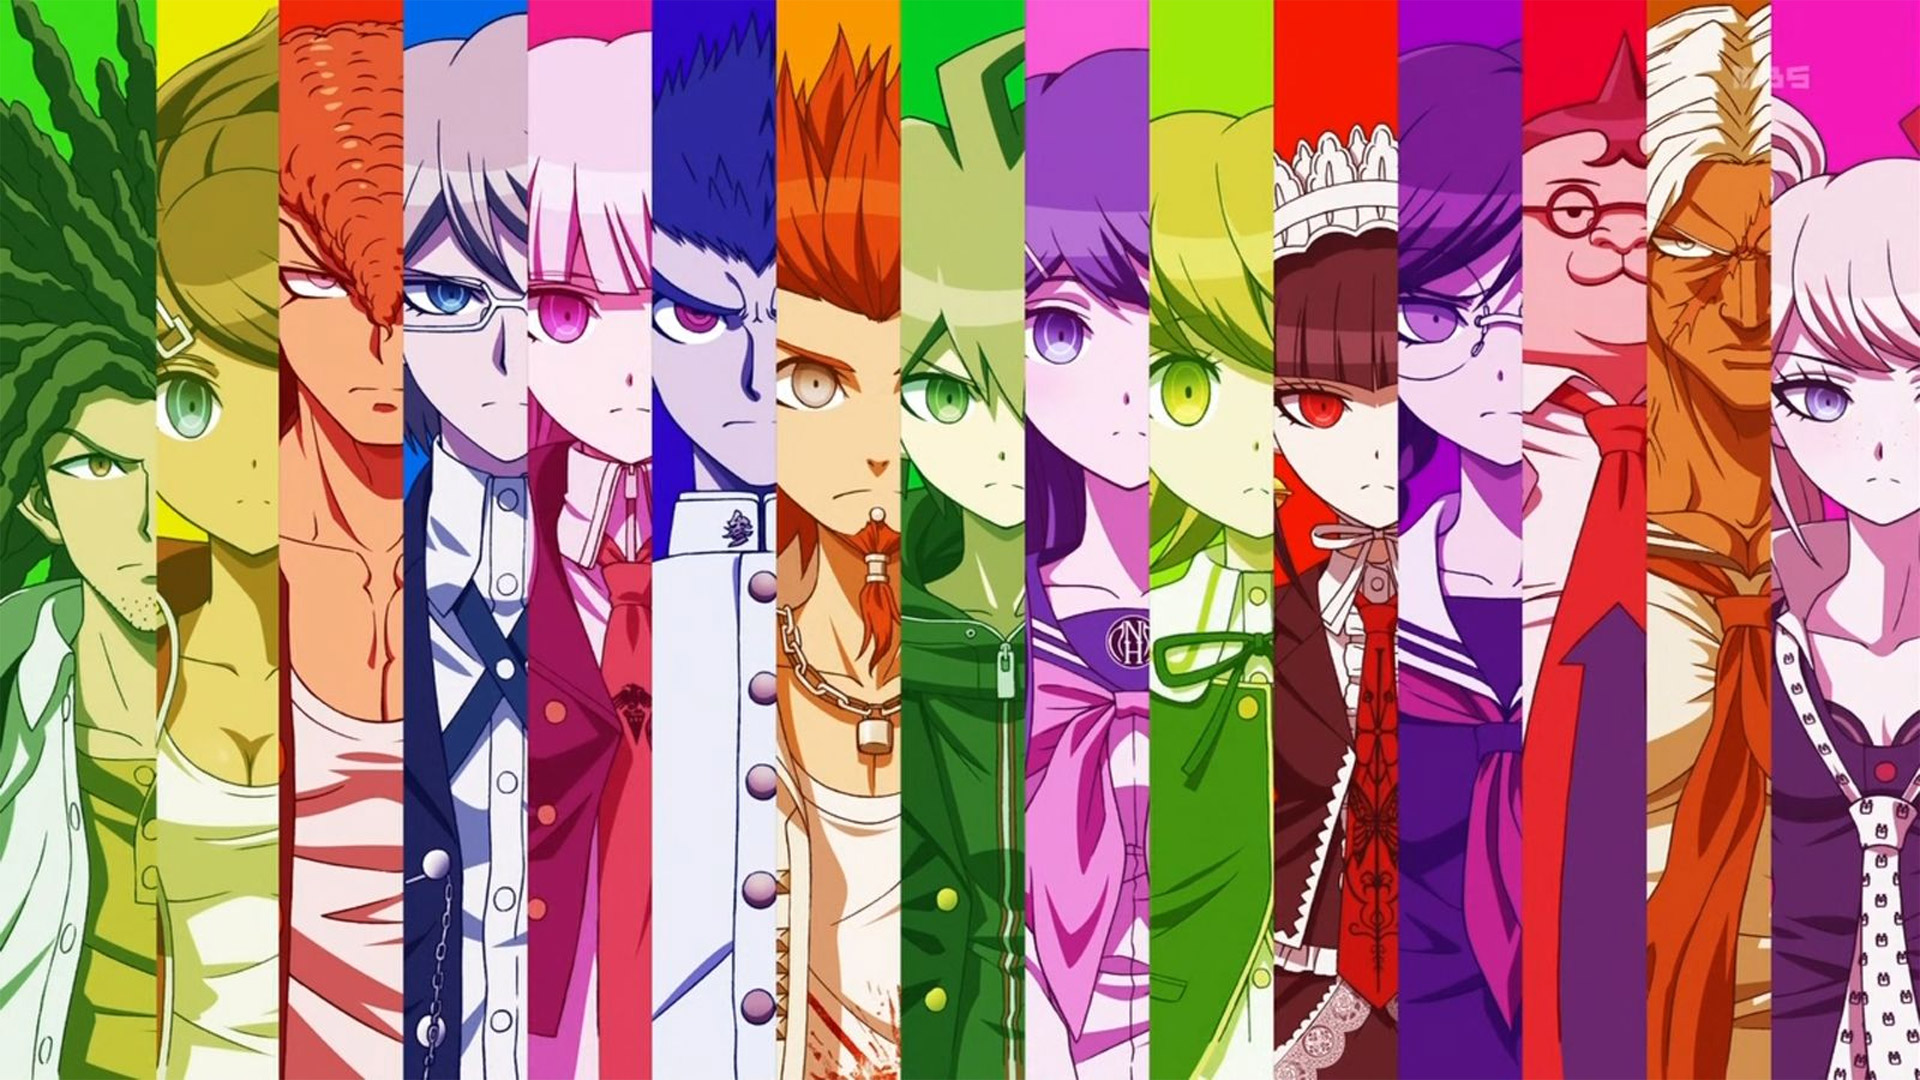 Danganronpa 3 Anime Characters : Danganronpa trigger happy havoc review deadly